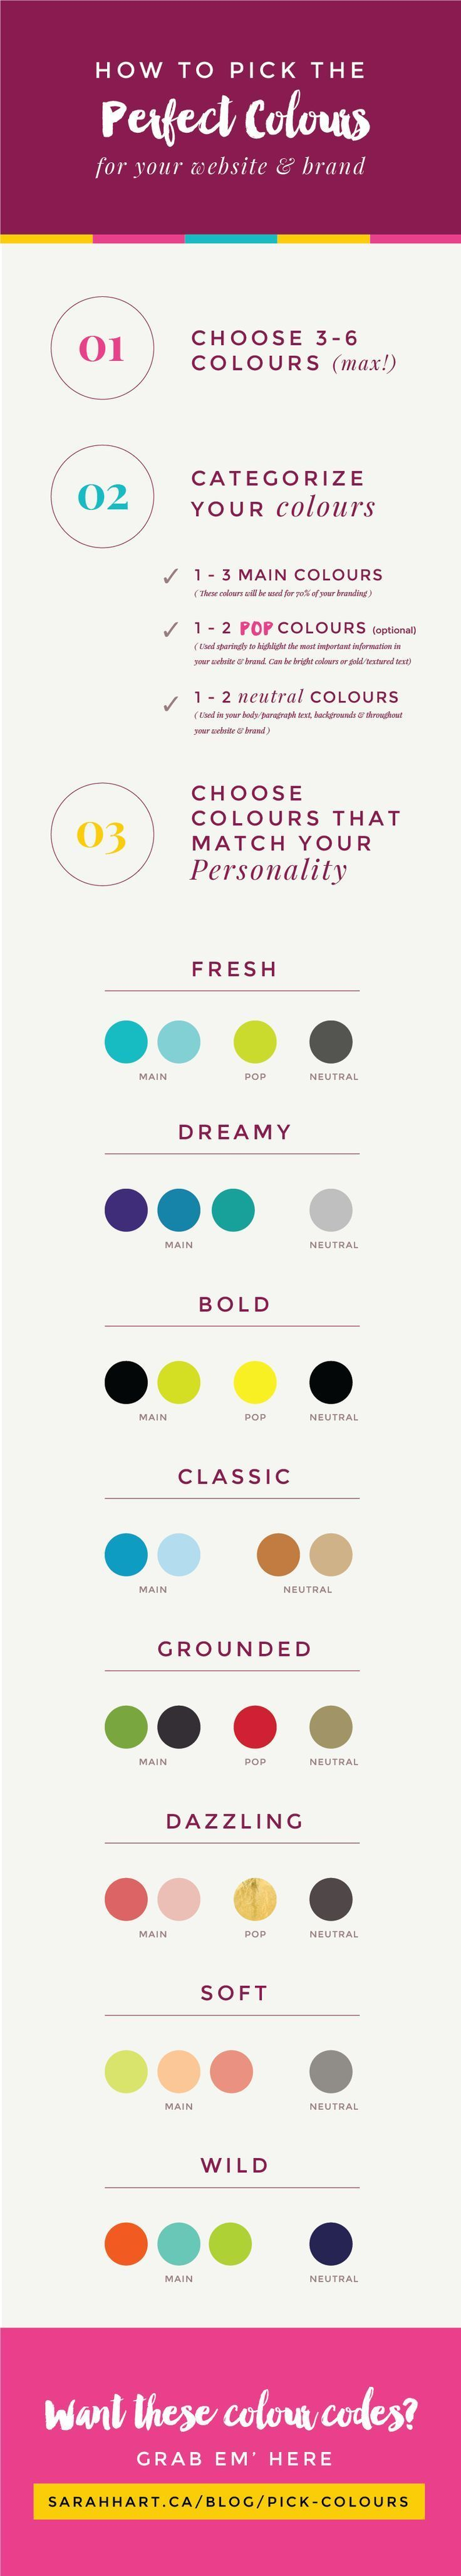 Business infographic : How to pick the perfect colours for your website & brand [infographic].